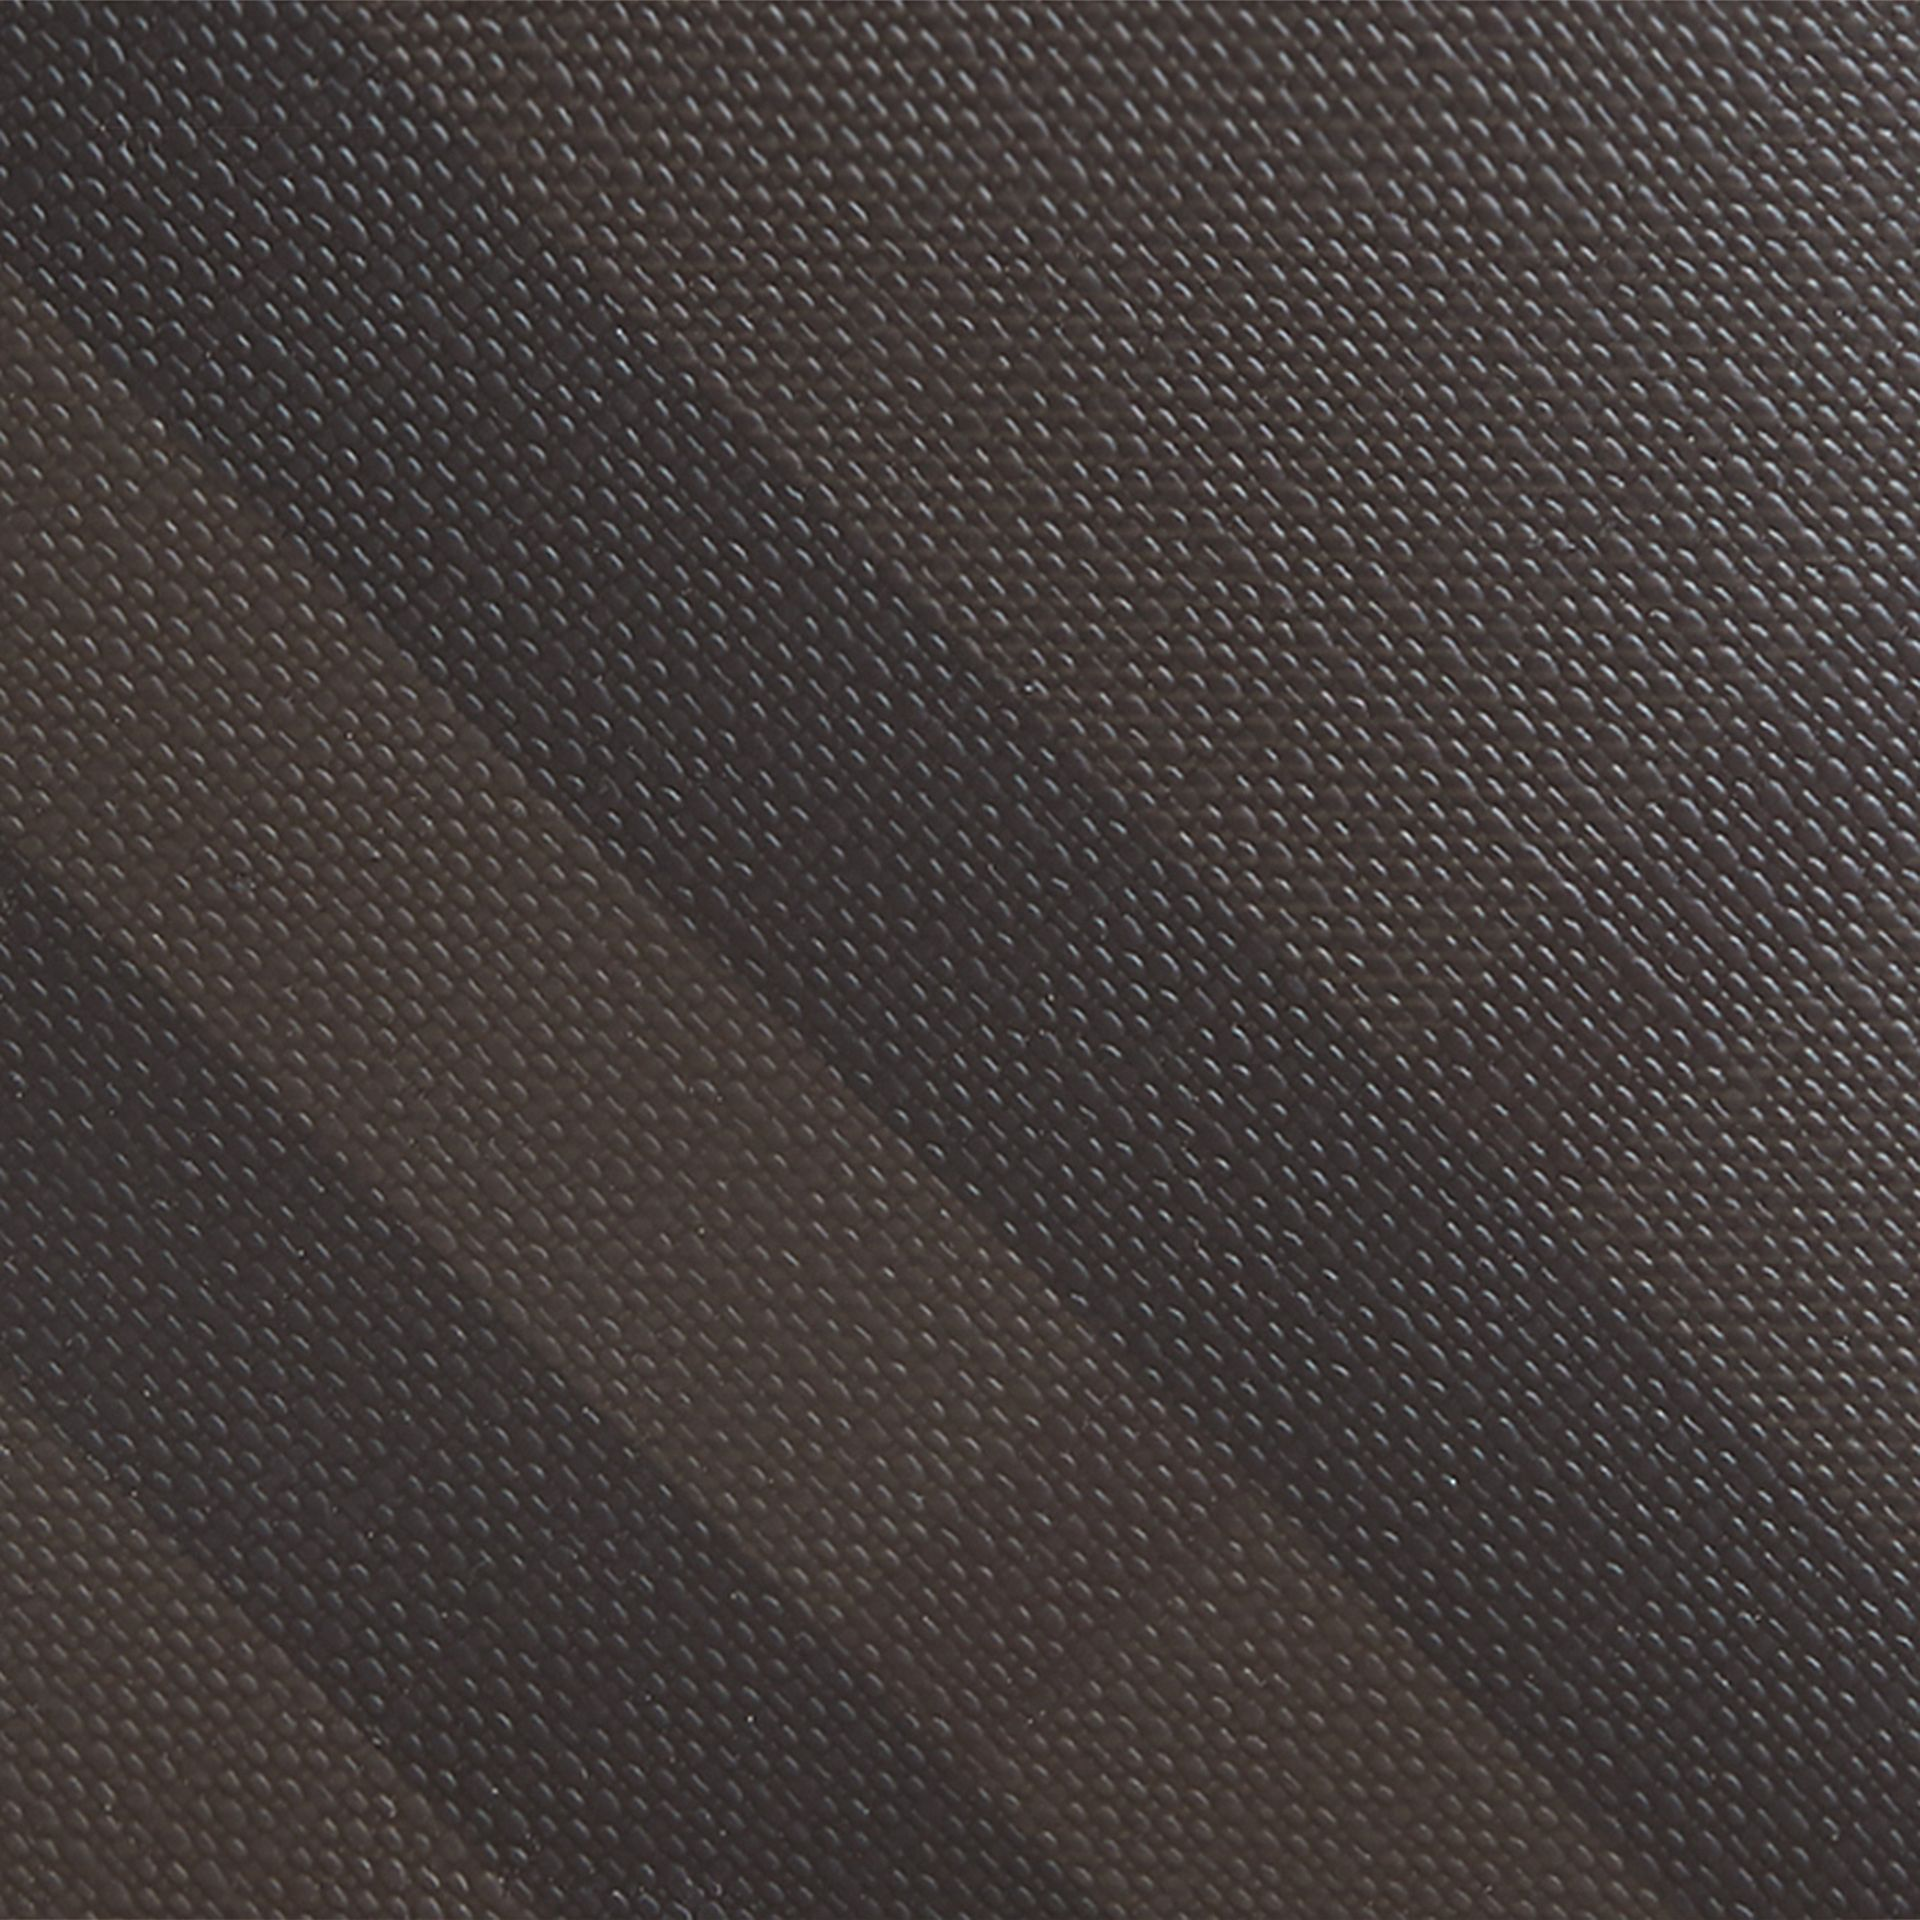 London Check International Bifold Coin Wallet in Chocolate/black - Men | Burberry United Kingdom - gallery image 2